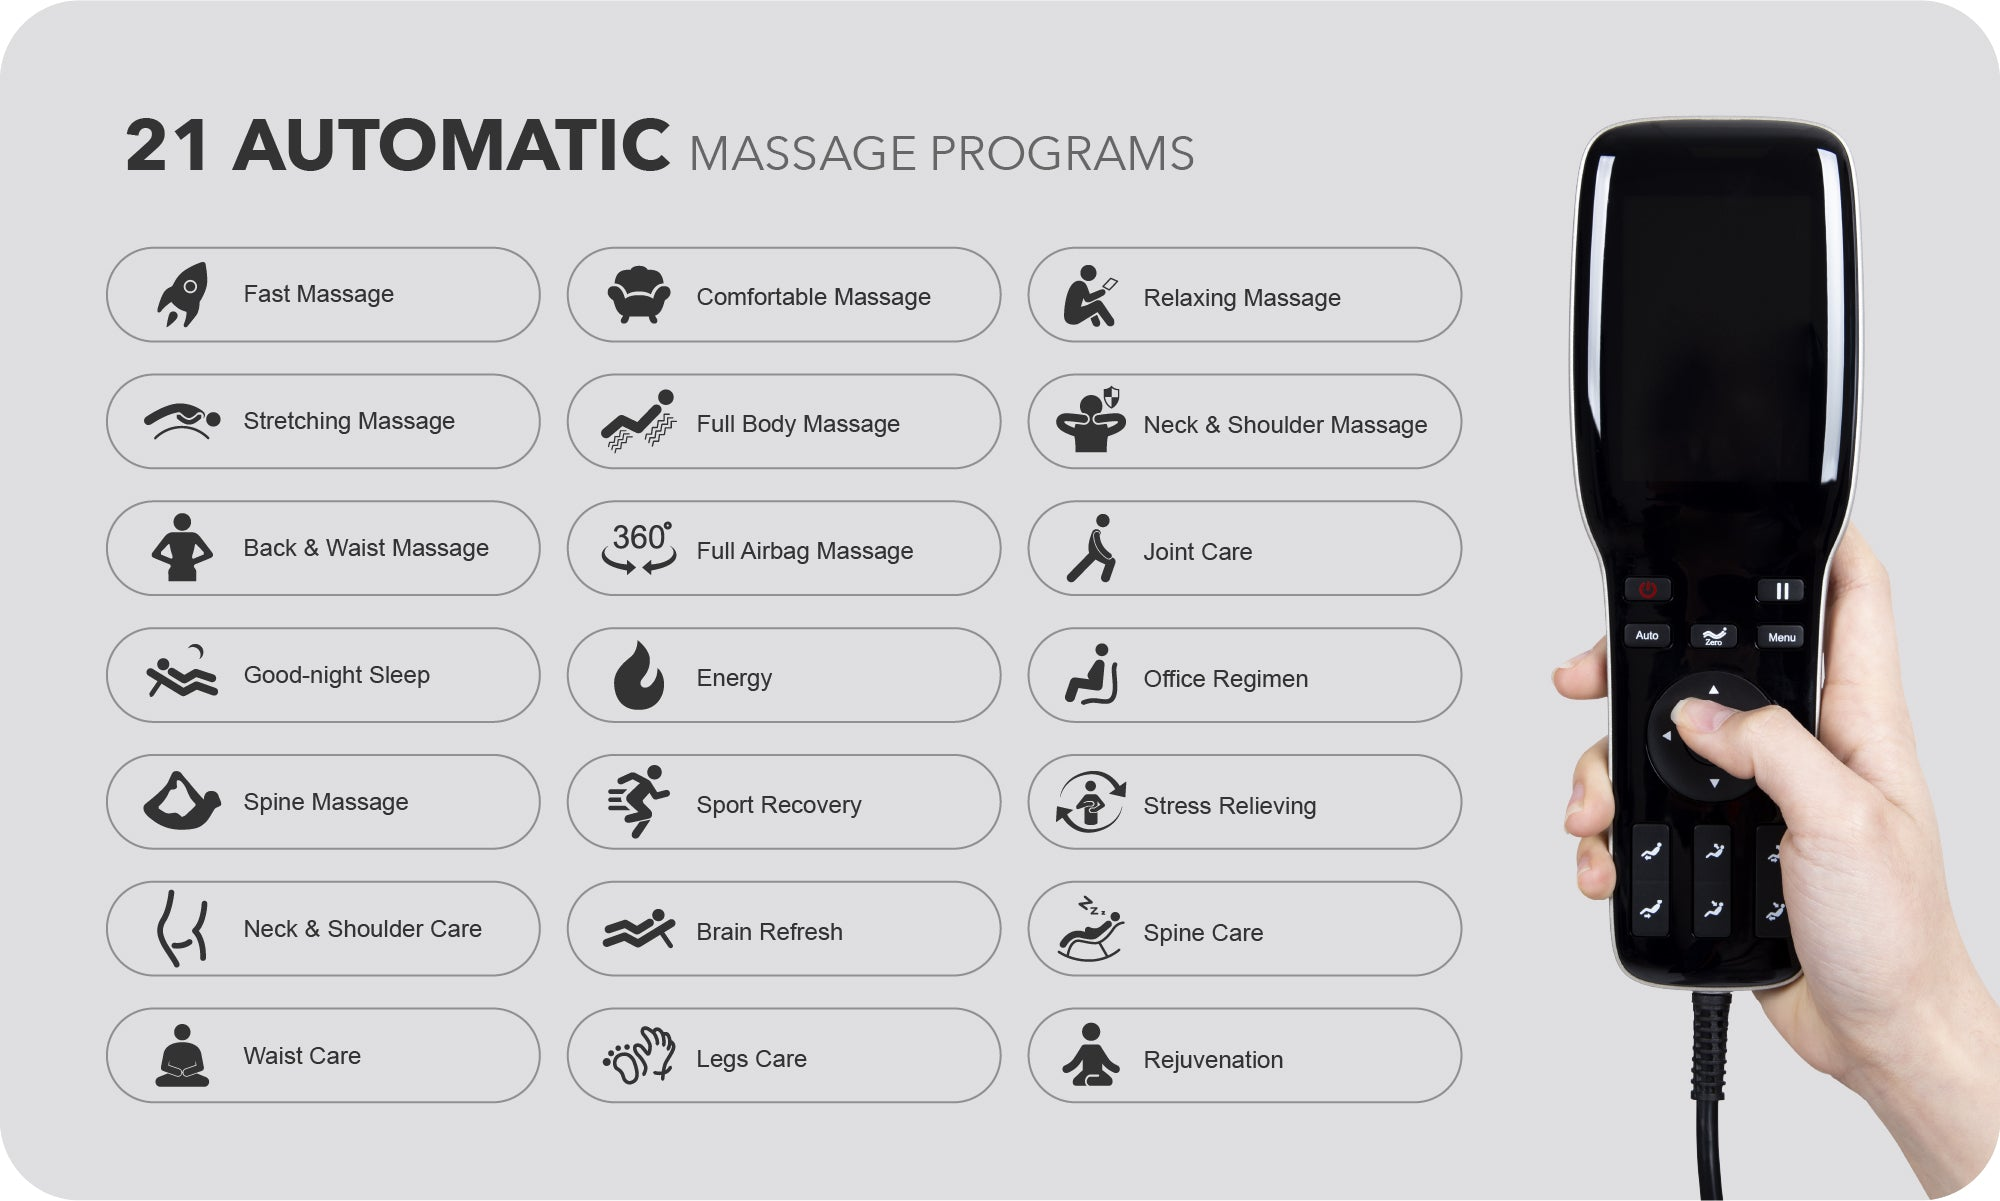 21 auto massage programs